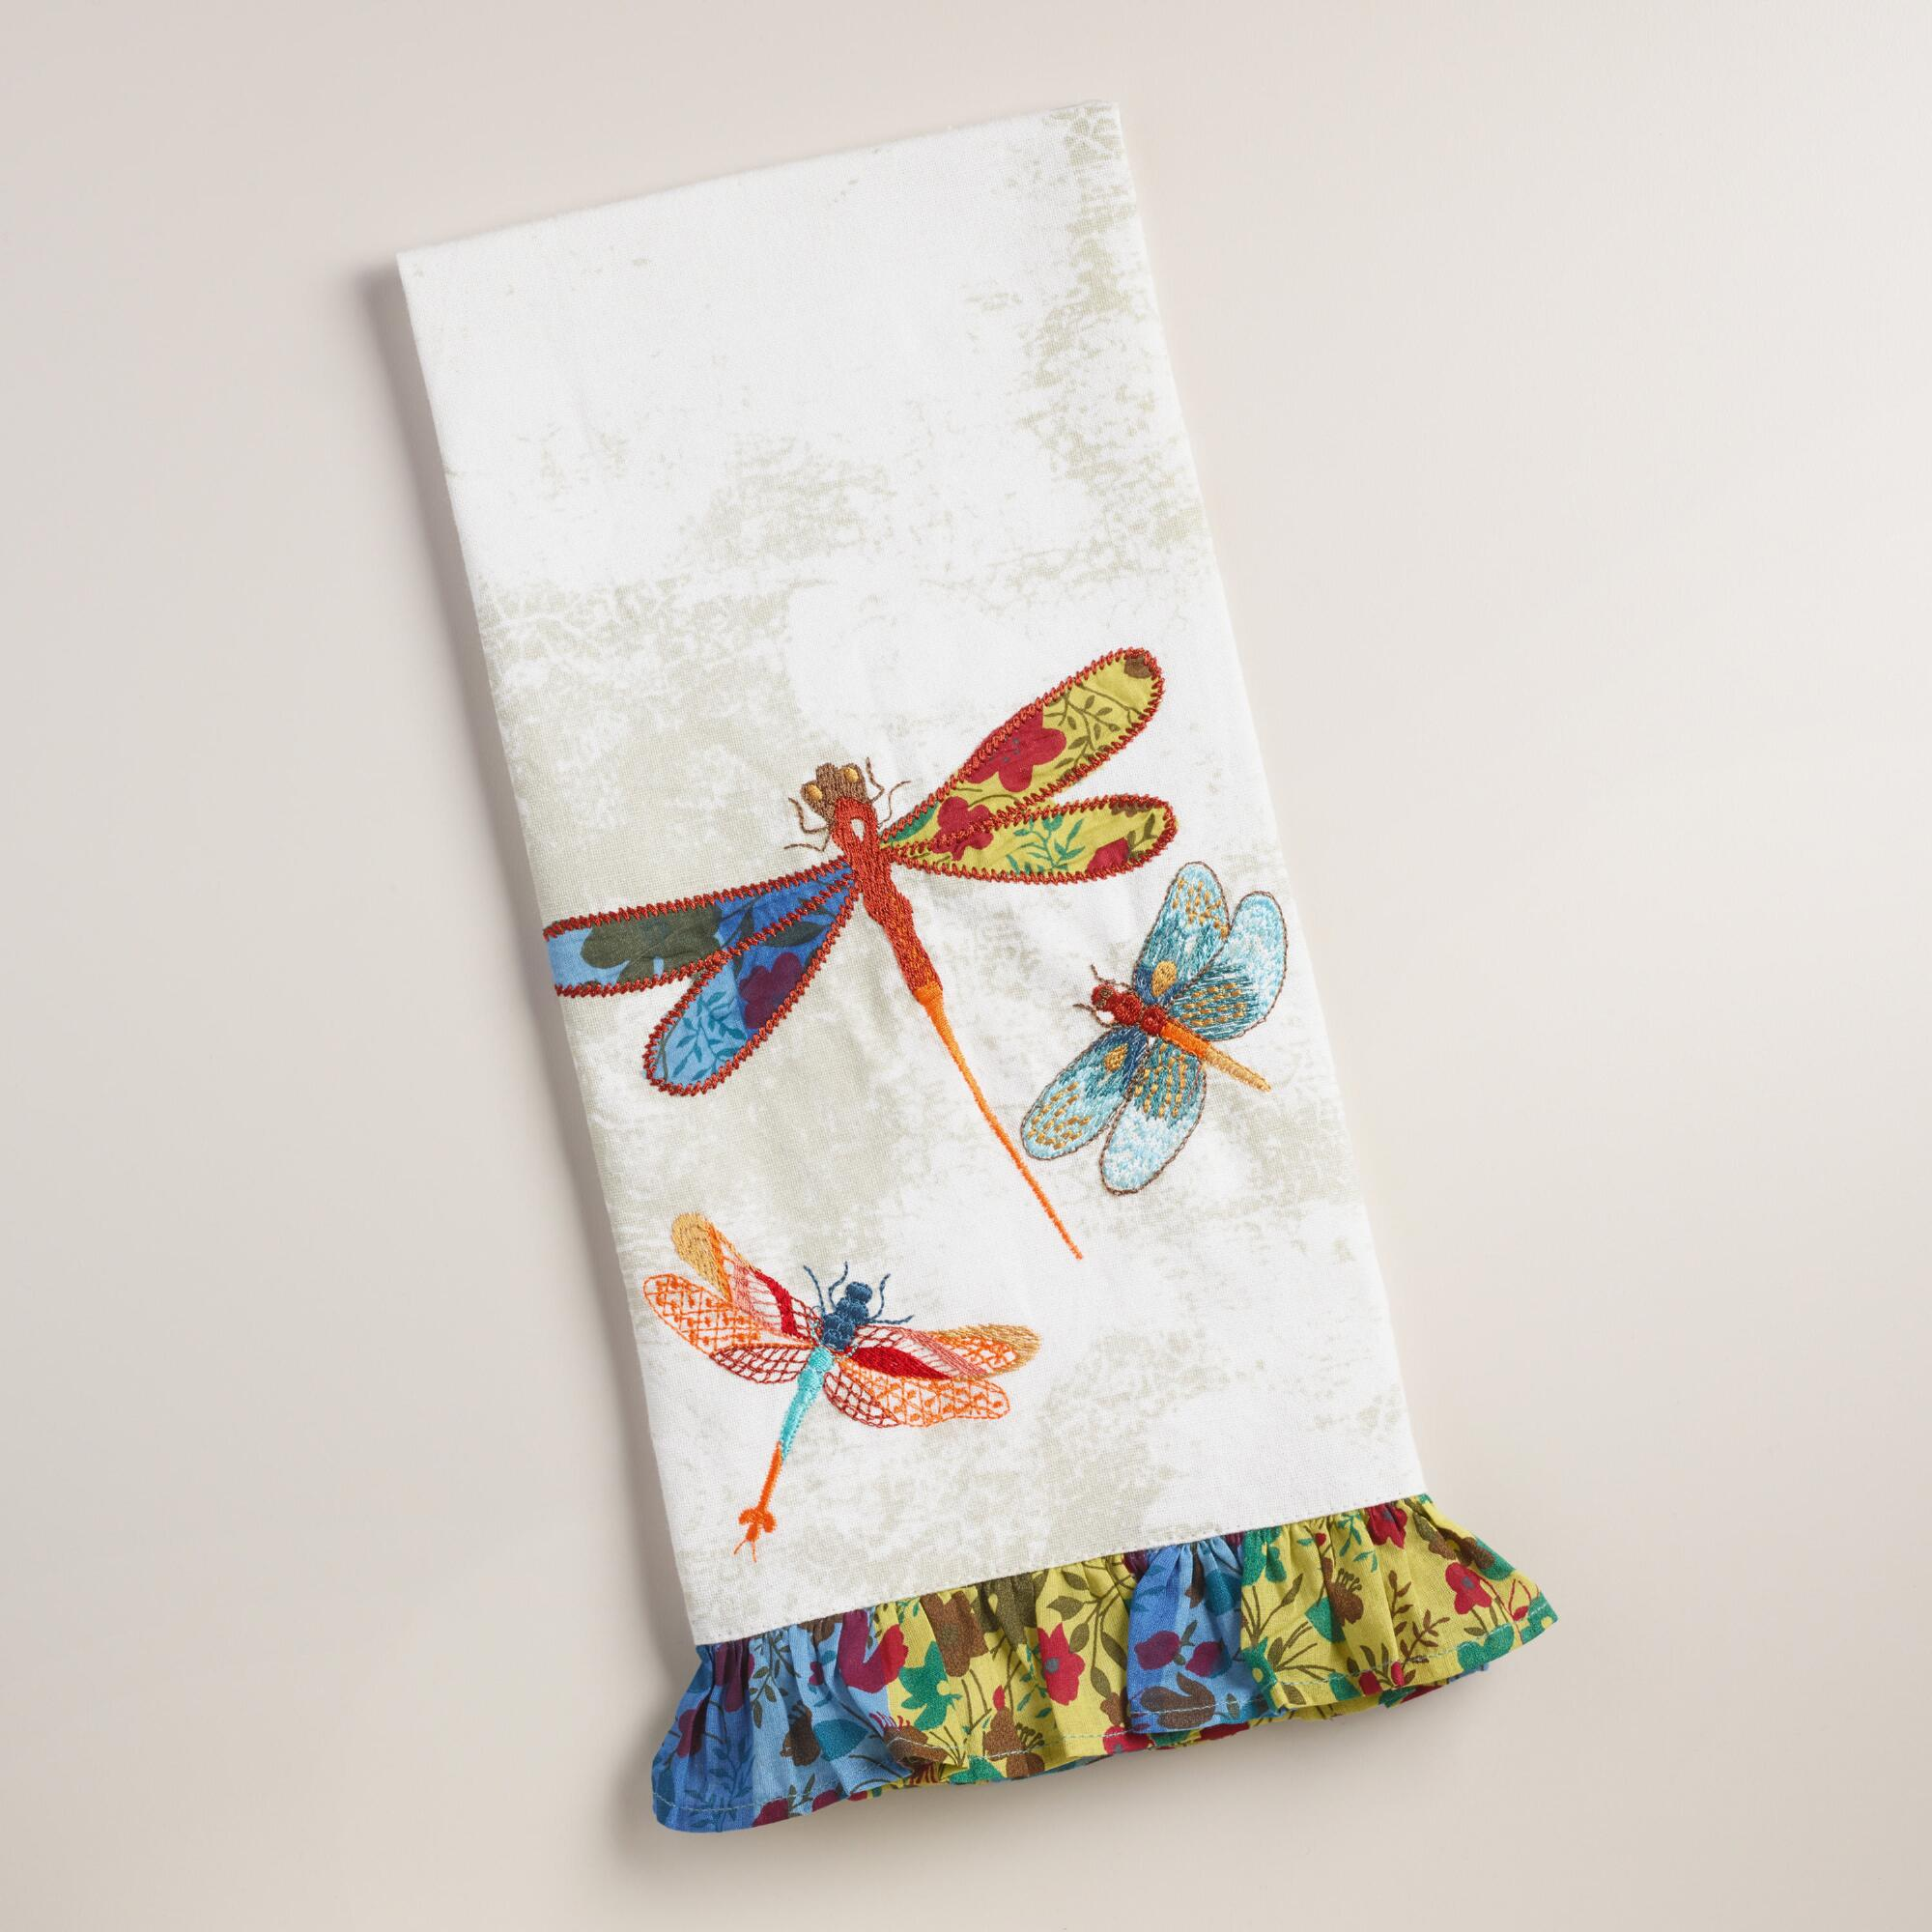 Embroidered Towels Online: Embroidered Dragonflies Kitchen Towel